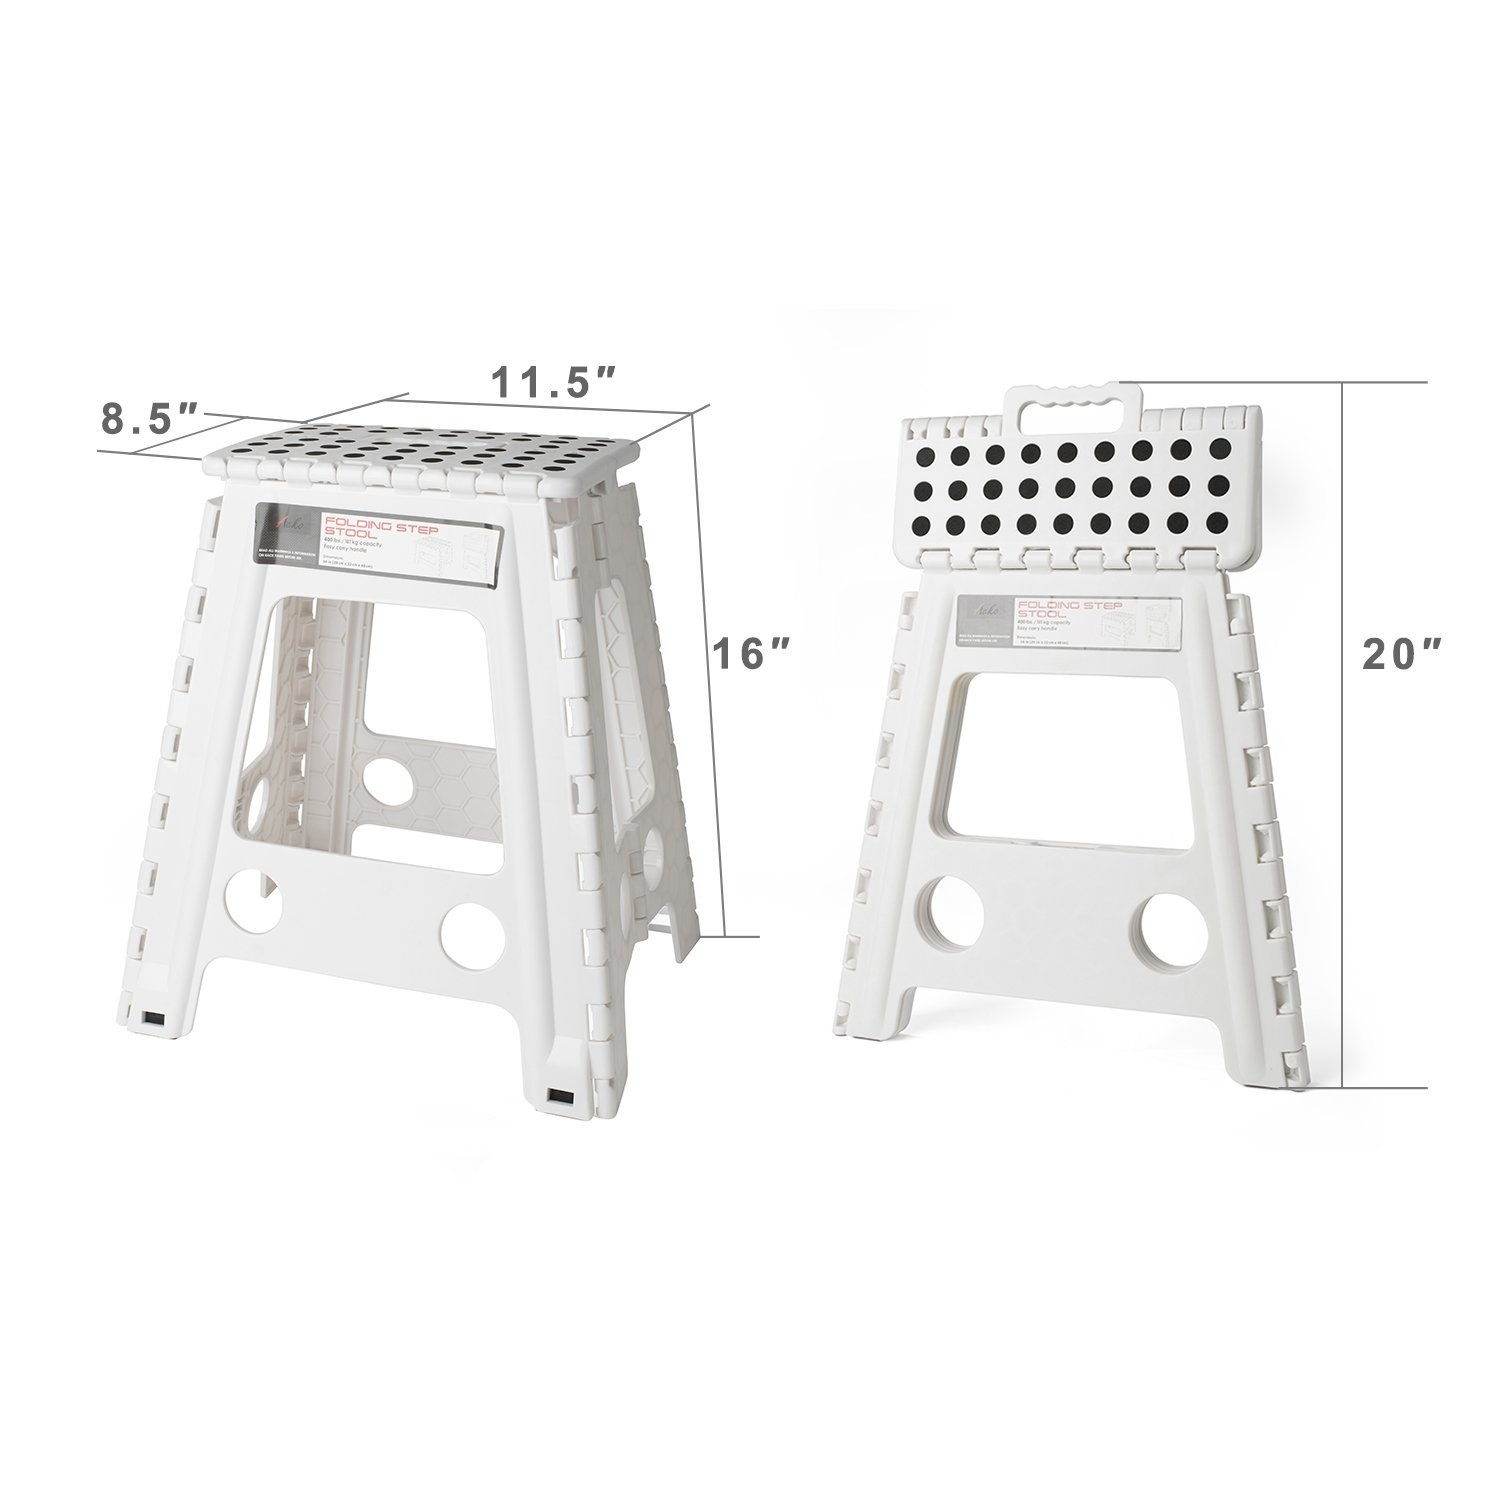 stools ladders hack handicap black bed folding elderly get small step bedroom steps kitchen wood high handle for suv building handles ikea in beds car to medical rubbermaid with lbs stool senior inspired type